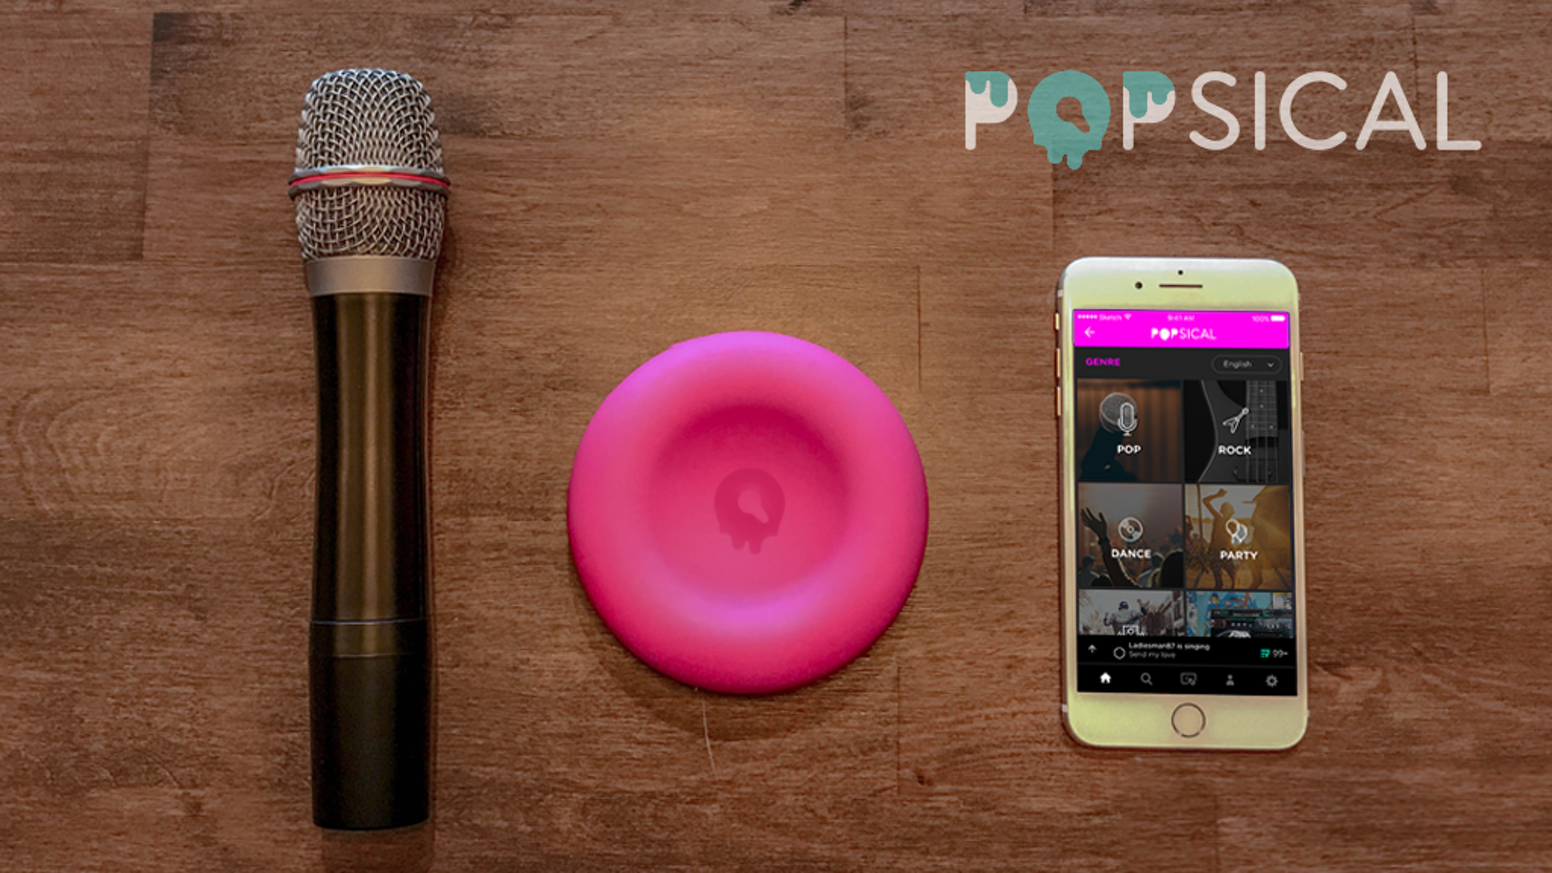 Popsical - The Smartest & Smallest Streaming Karaoke System